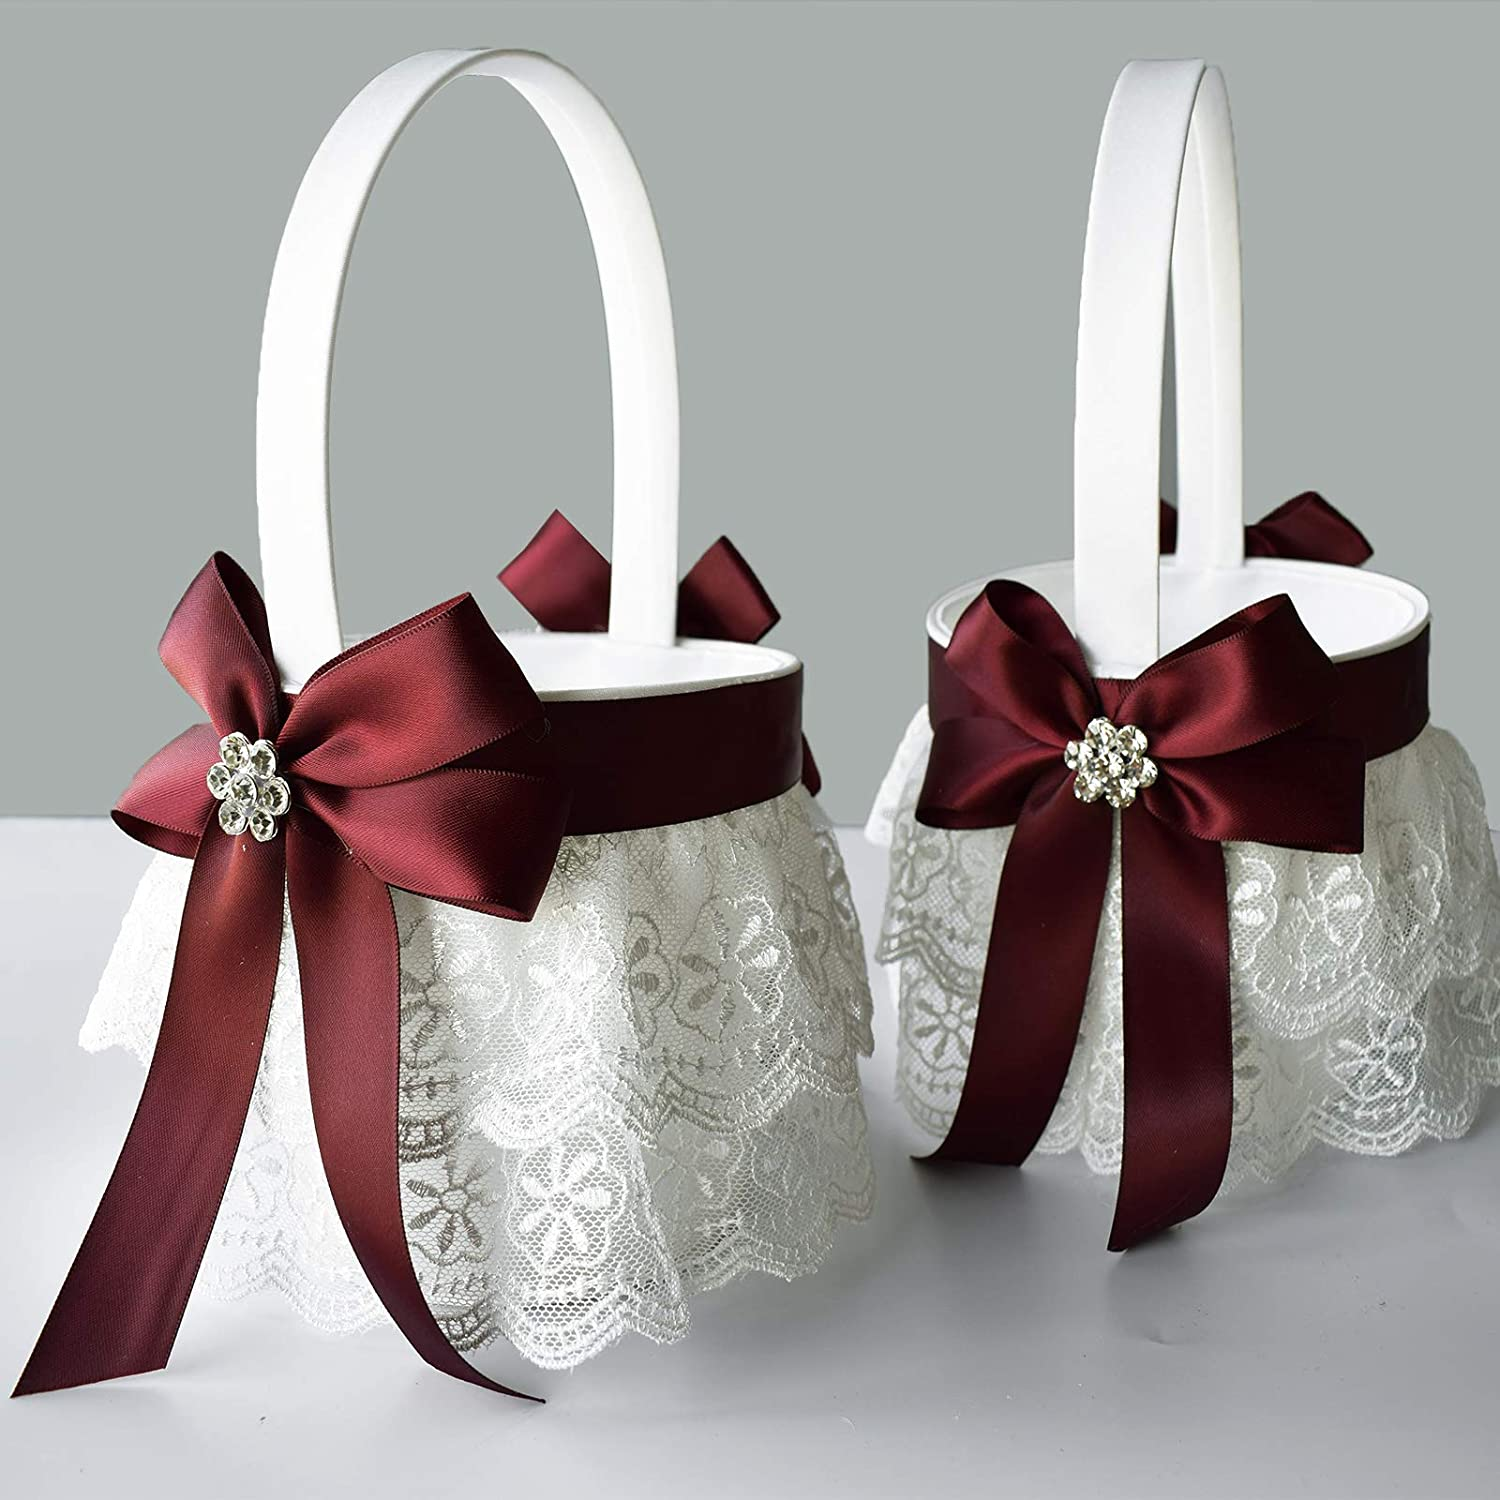 ATAILOVE Flower Girl Baskets for Wedding - Double Lace Accented Royal Design (Dark Red)